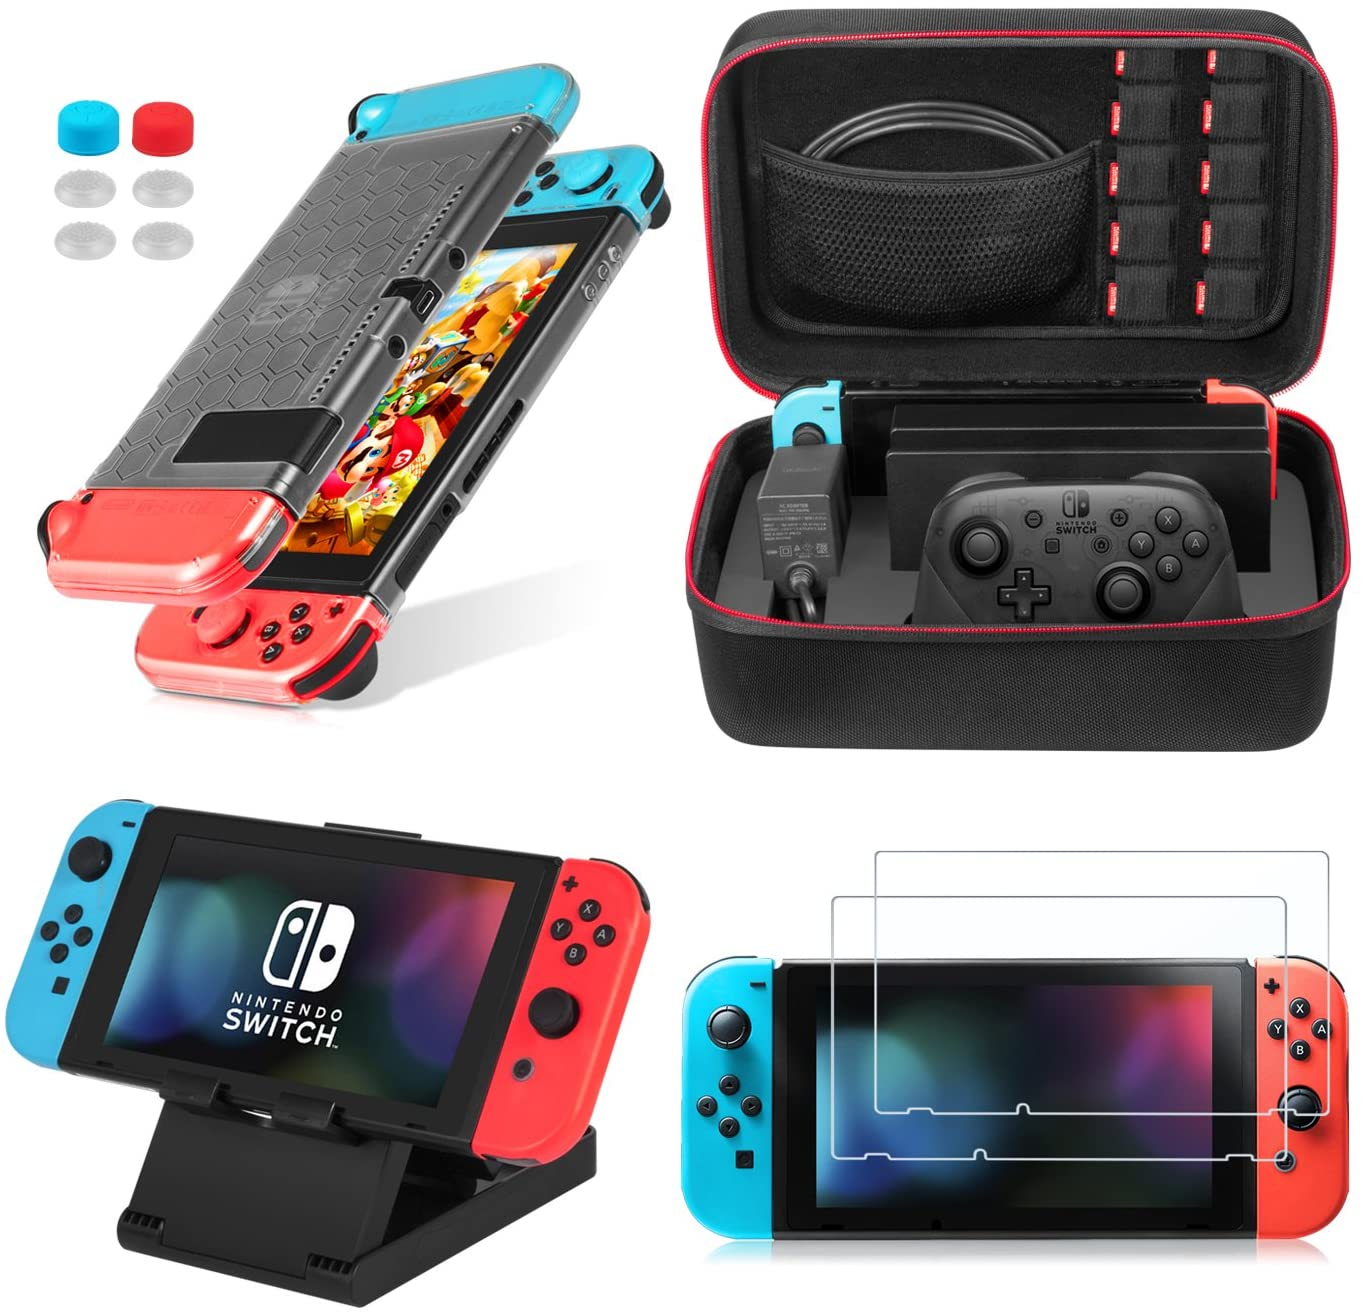 Kit de Accesorios 13 en 1 para Nintendo Switch